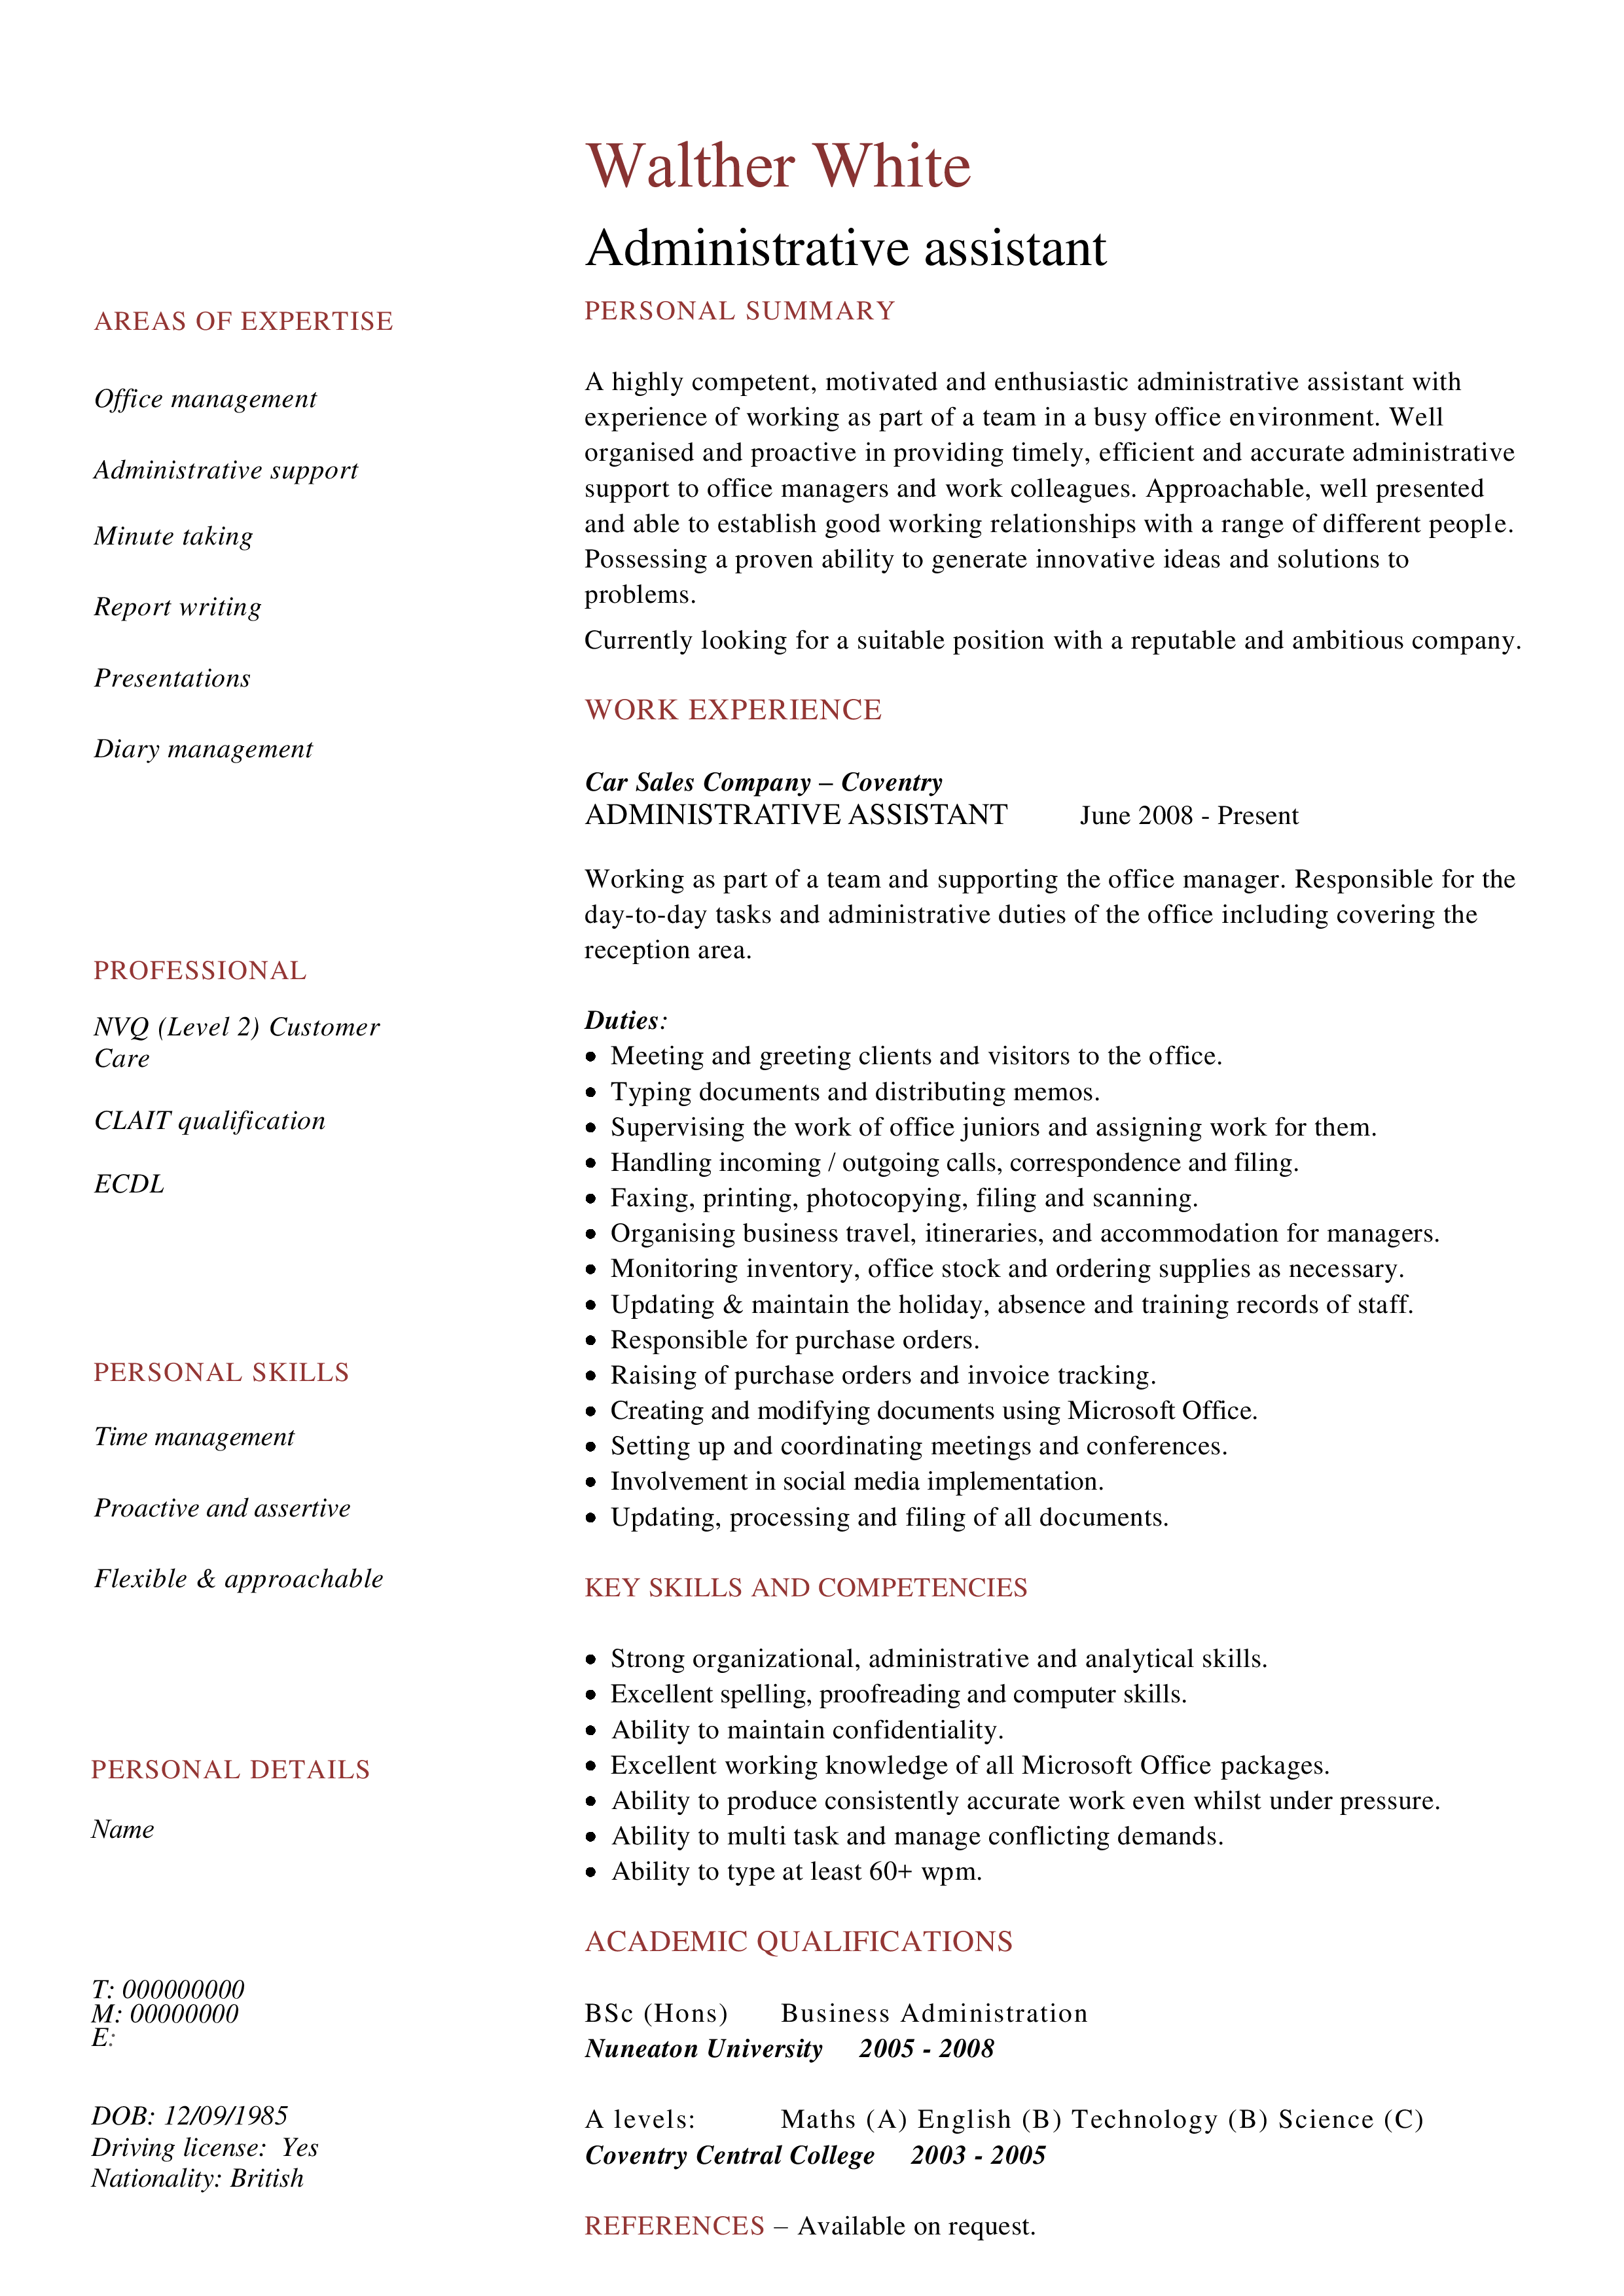 Administrative Work Experience Resume main image